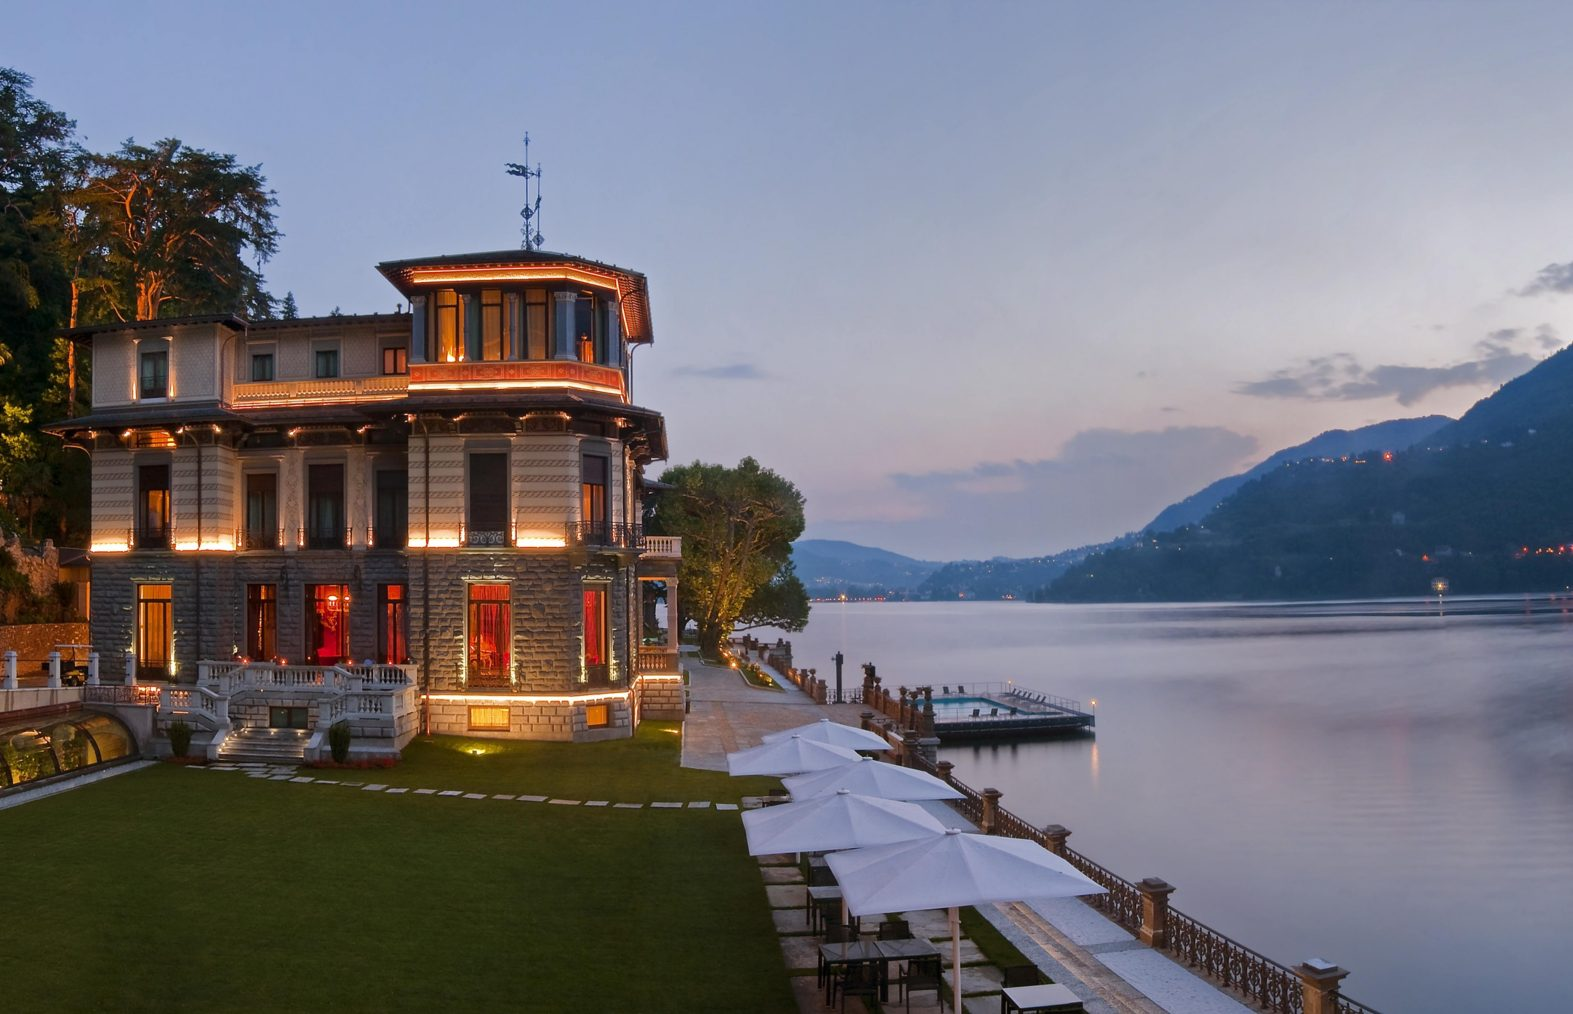 Mandarin Oriental, Lake Como, Italy, luxury, resort, hotel, view, MICE, meeting, CastaDiva